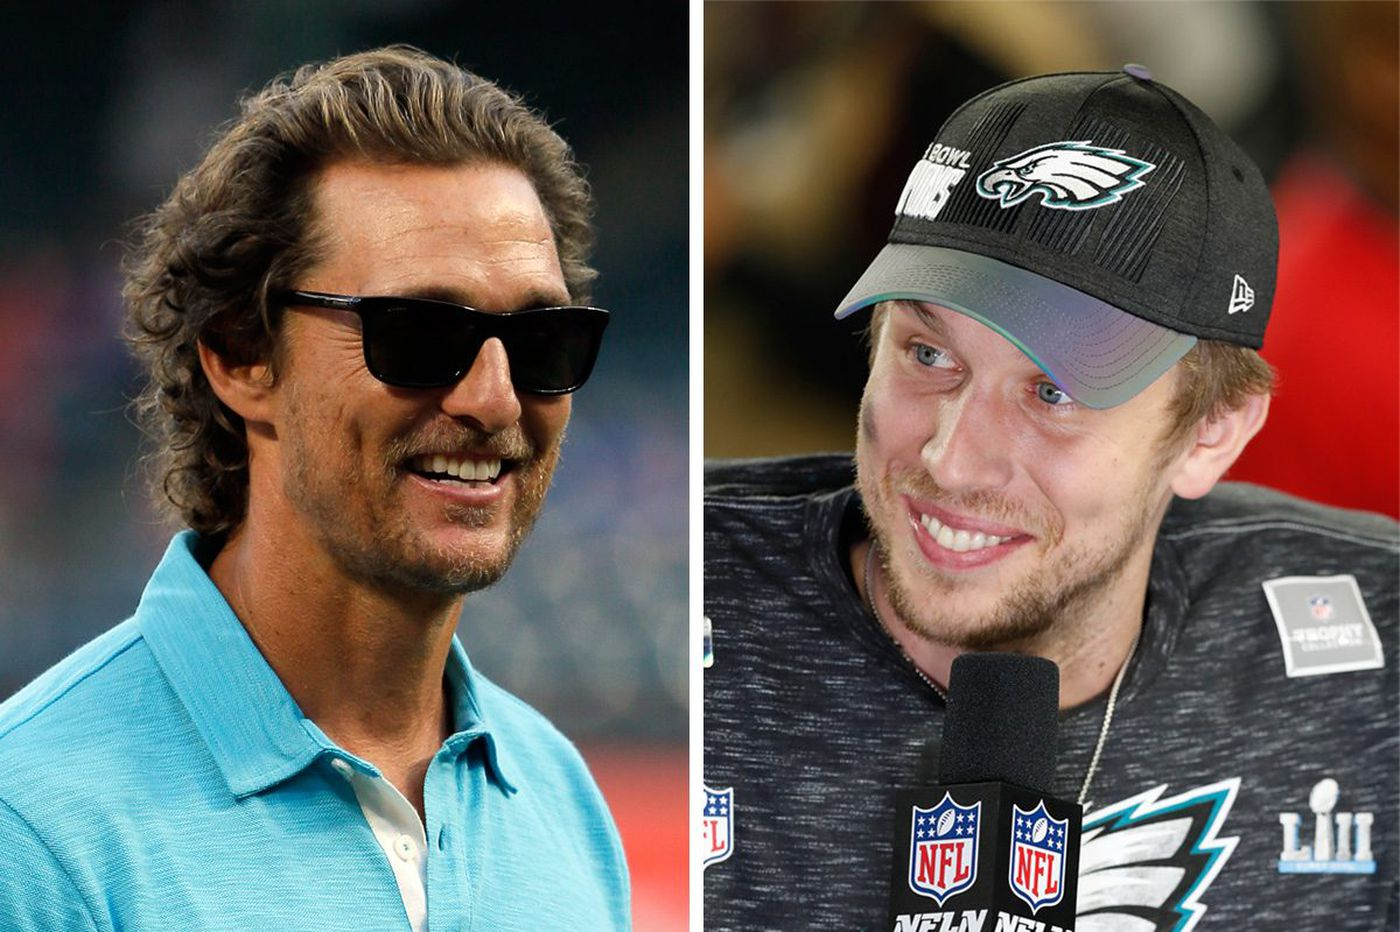 Matthew McConaughey hails fellow Texan Nick Foles with a full page ad